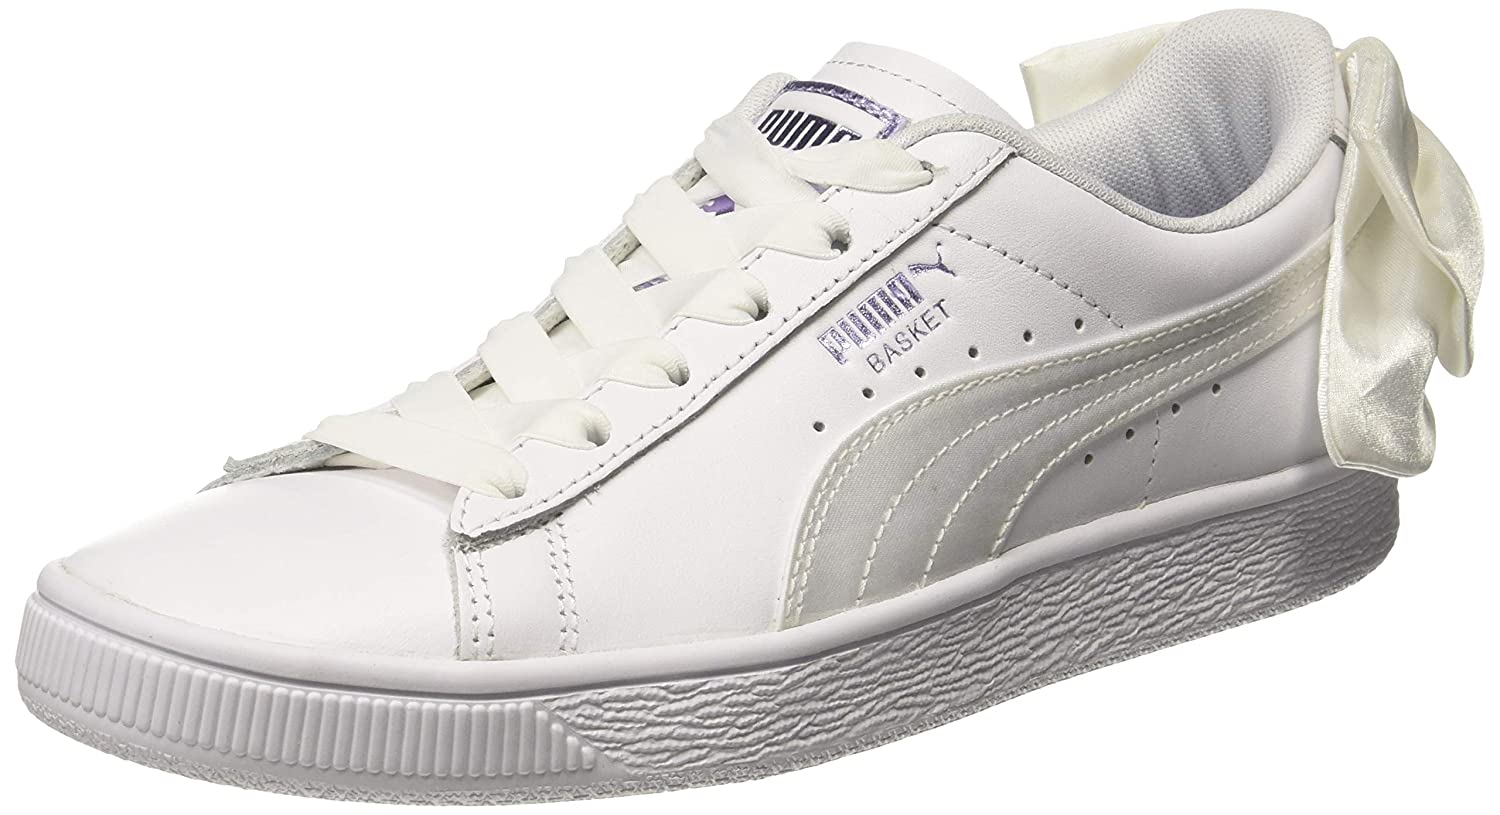 Basket Bow Satin Wn s Leather Sneakers